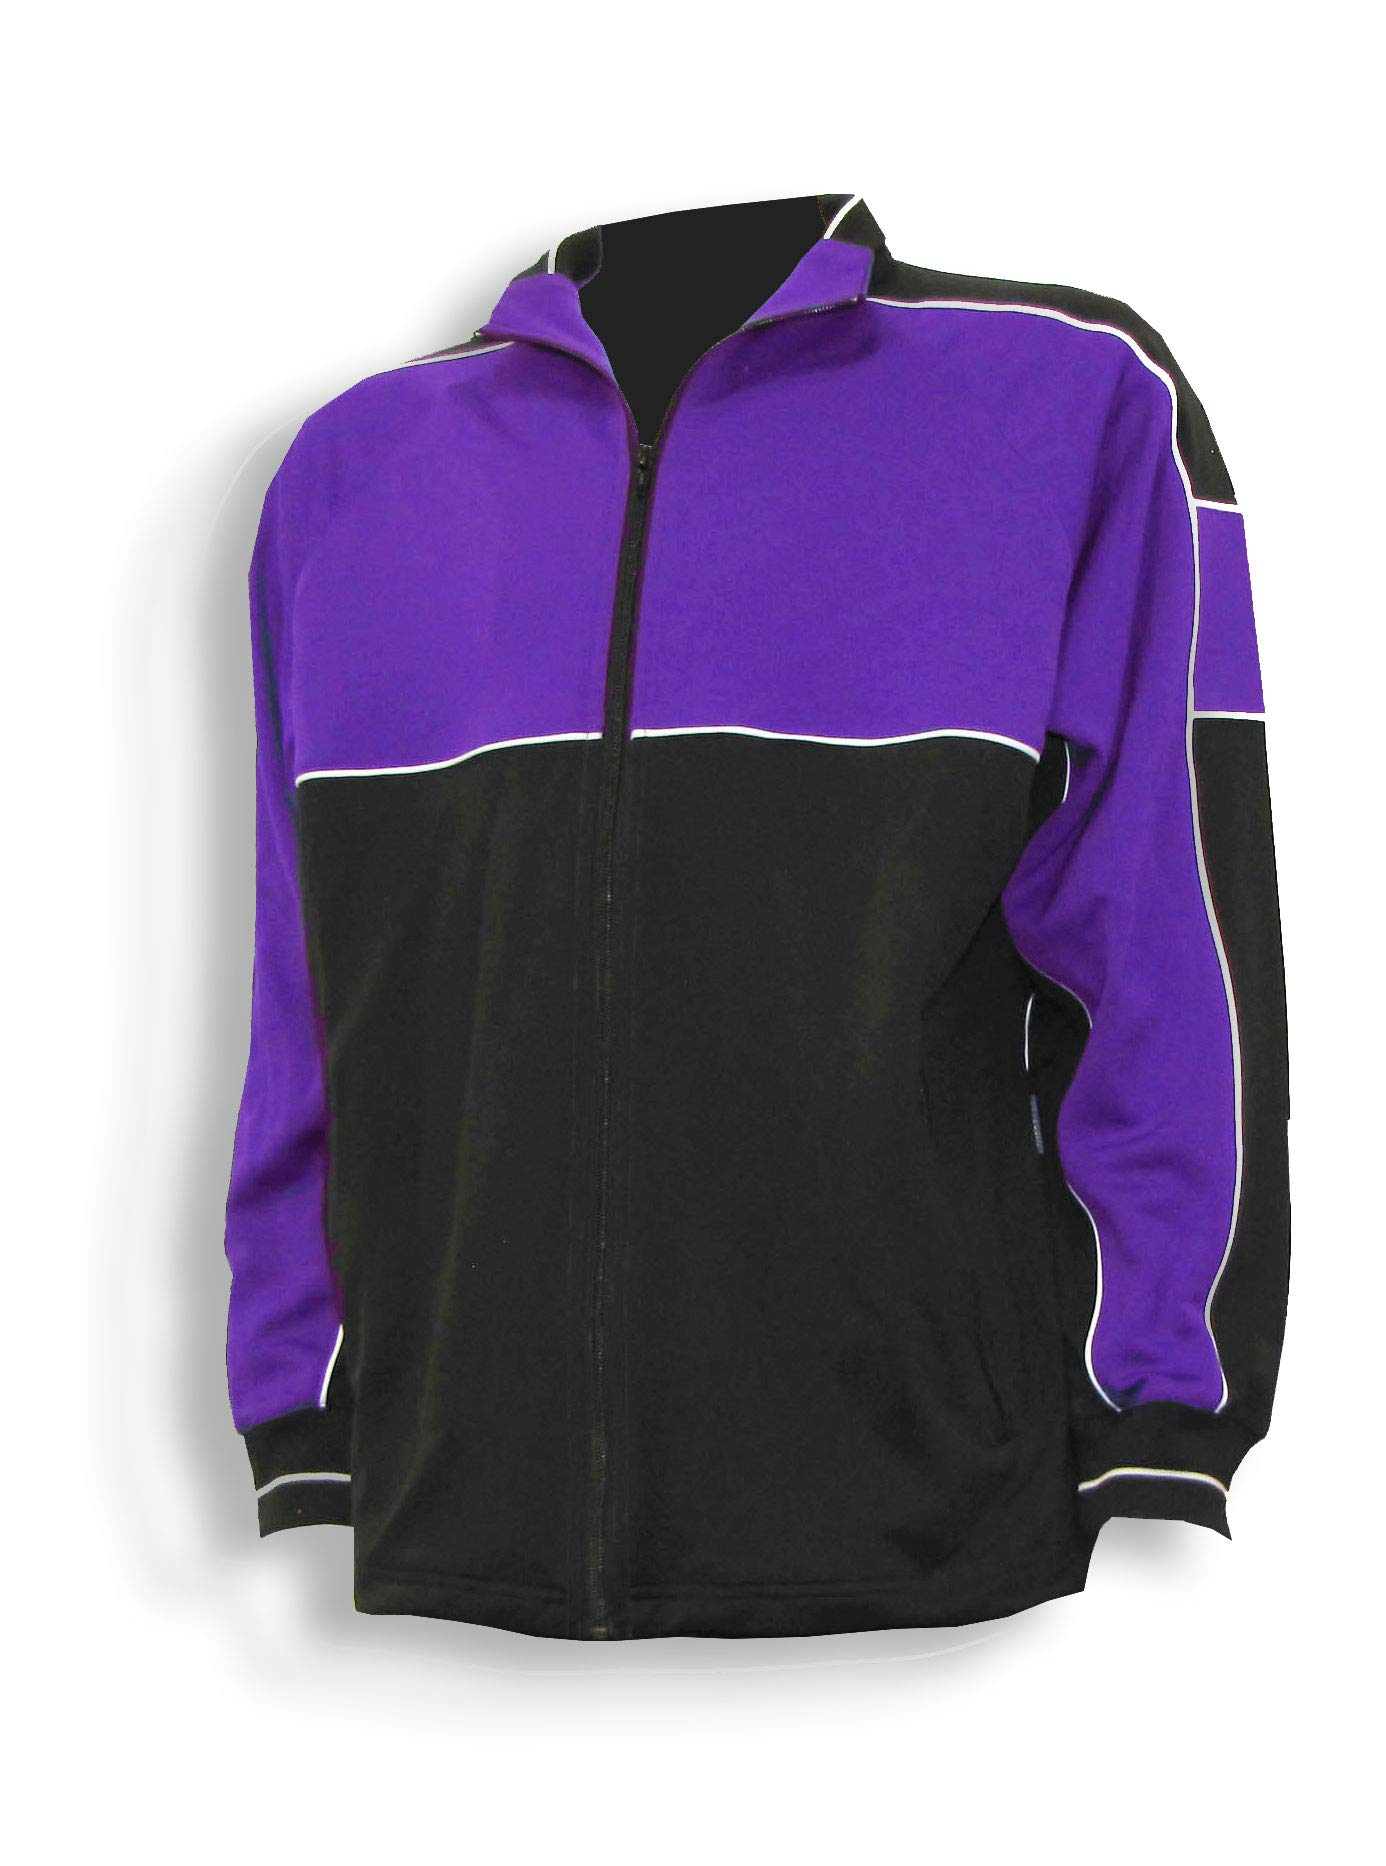 Code Four Athletics Sparta Soccer Poly-Knit Warmup Jacket - Size Youth S - Purple/Black by Code Four Athletics